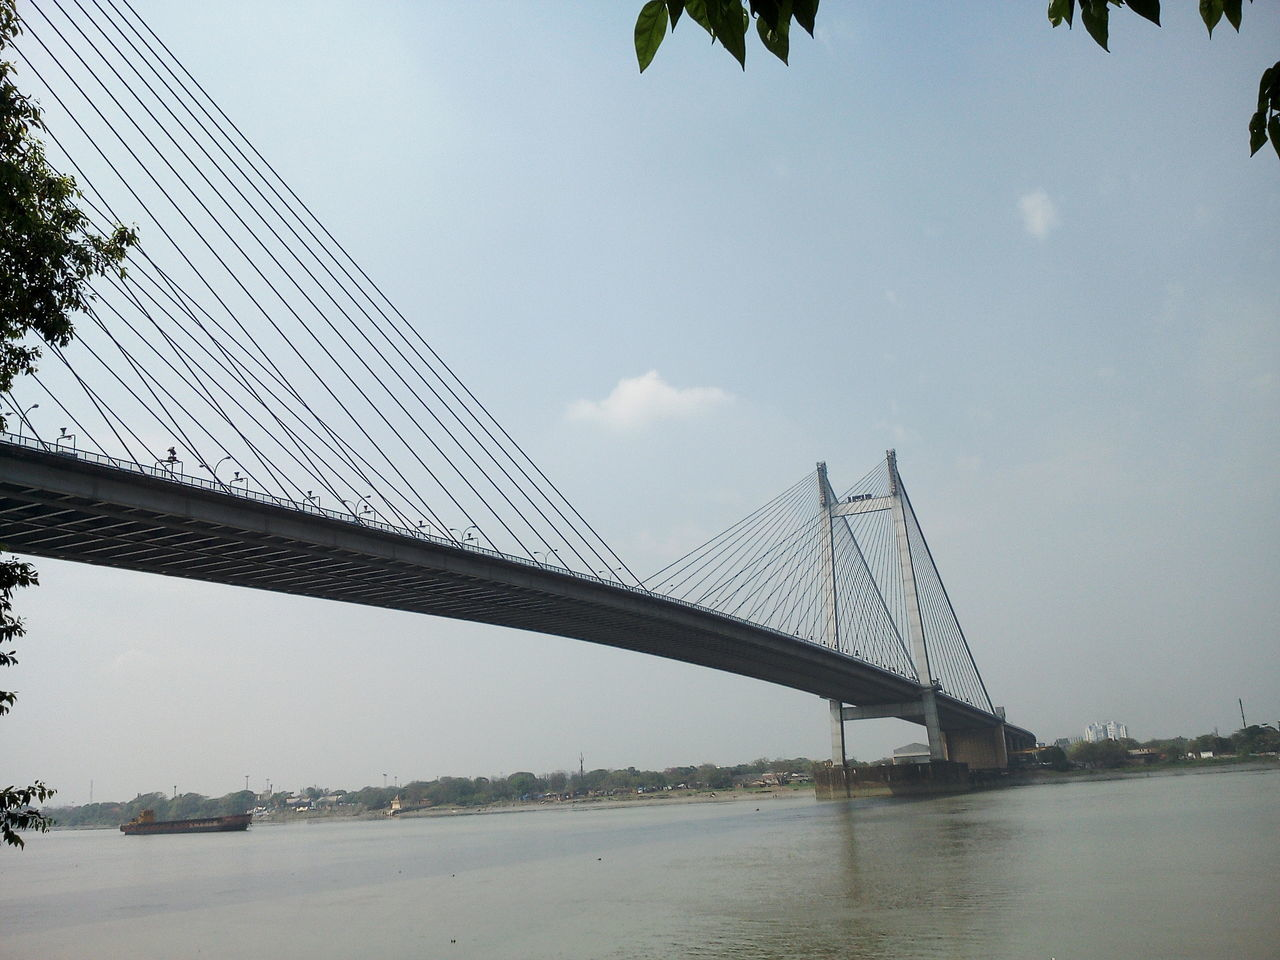 bridge - man made structure, connection, engineering, suspension bridge, built structure, architecture, sky, transportation, bridge, river, outdoors, day, water, travel, travel destinations, no people, tree, city, nature